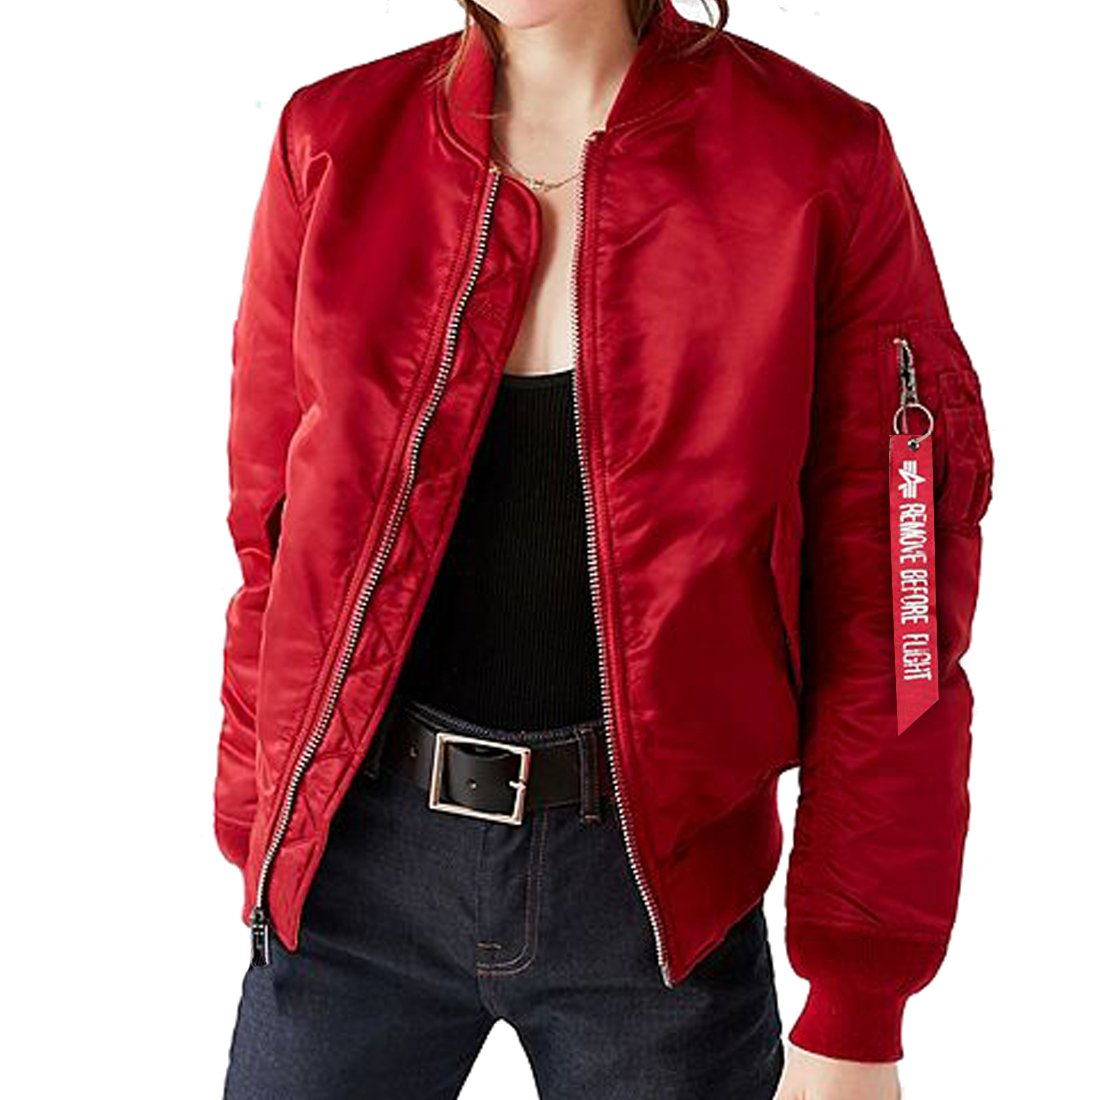 GWELL Men's Casual Bomber Jacket Military Windbreaker Outdoor Air Force Coat Slim Fit Spring Autumn